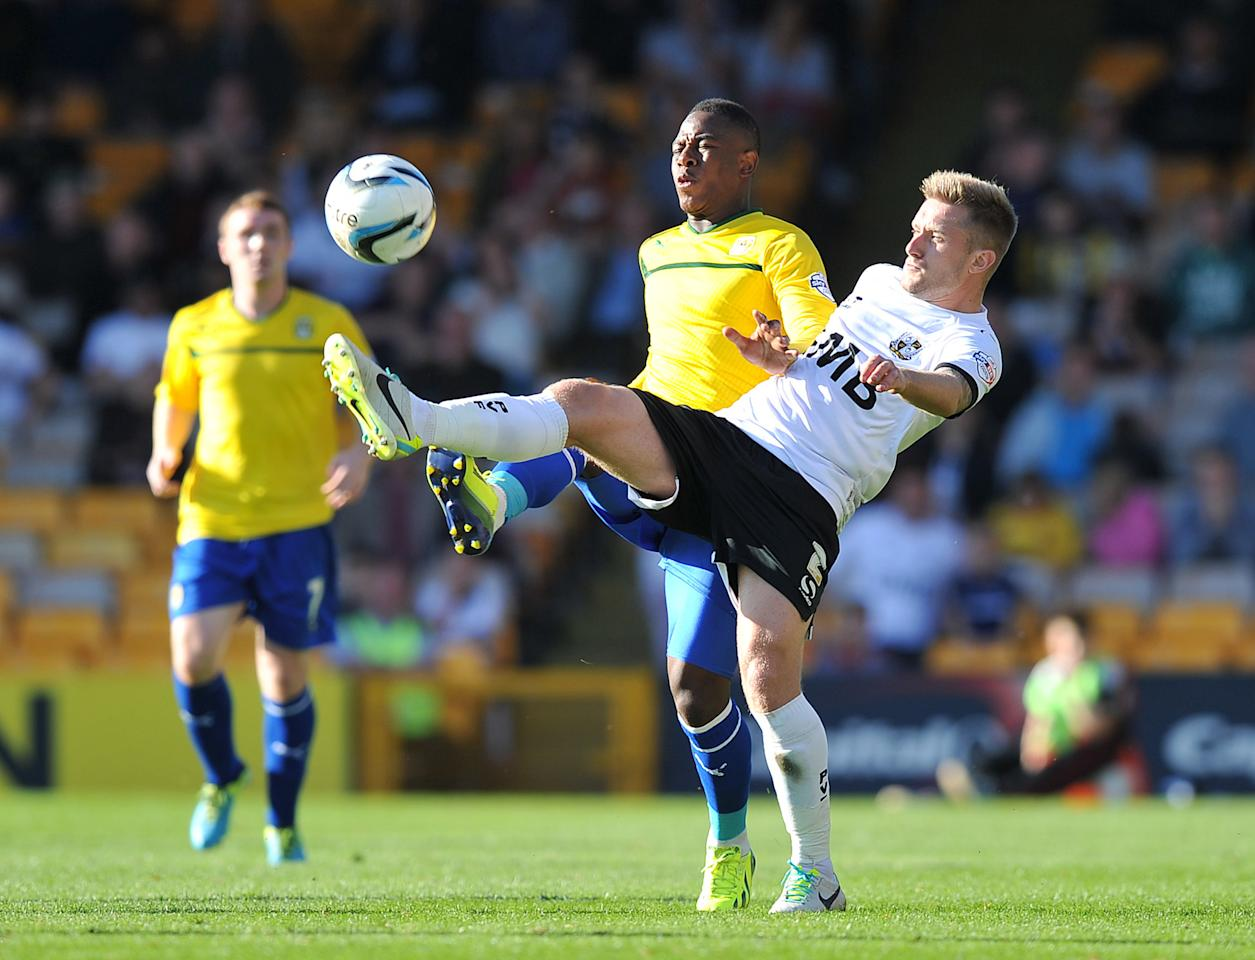 Coventry City's Franck Moussa (left) and Port Vale's Adam Yates (right) battle for the ball during the Sky Bet League One match at Vale Park, Stoke.